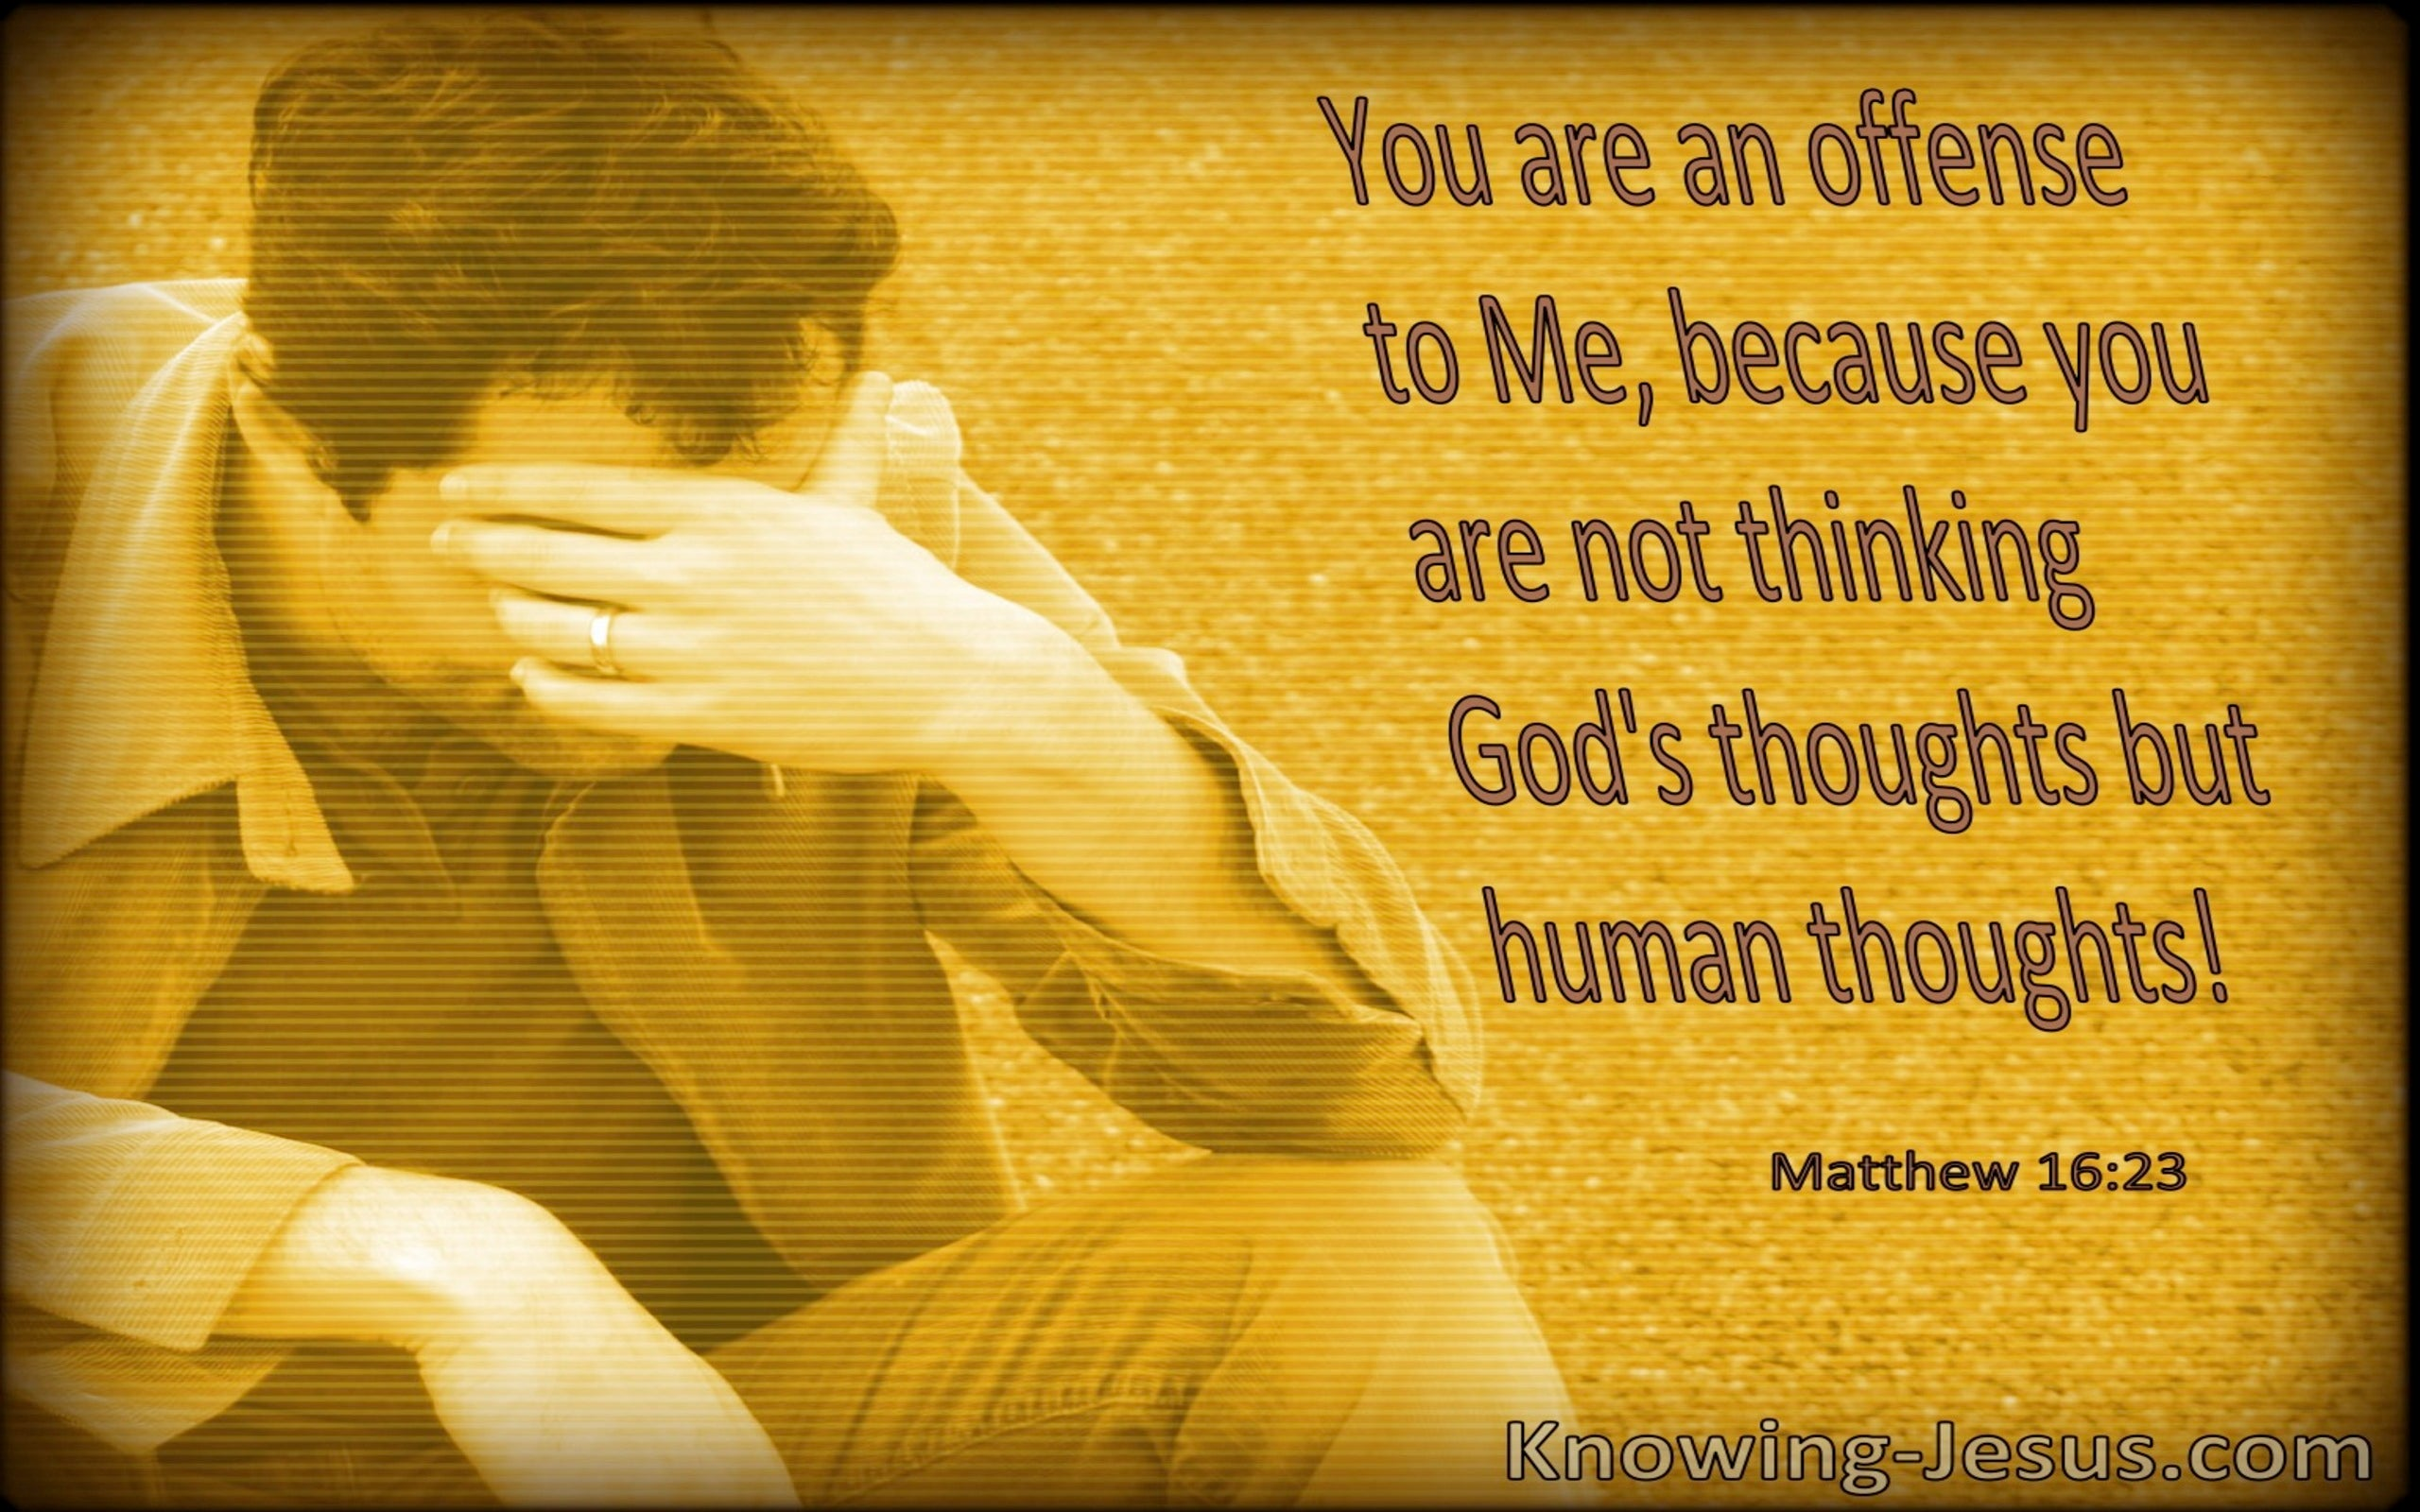 Matthew 16:23 You Are An Offense To Me (windows)03:20